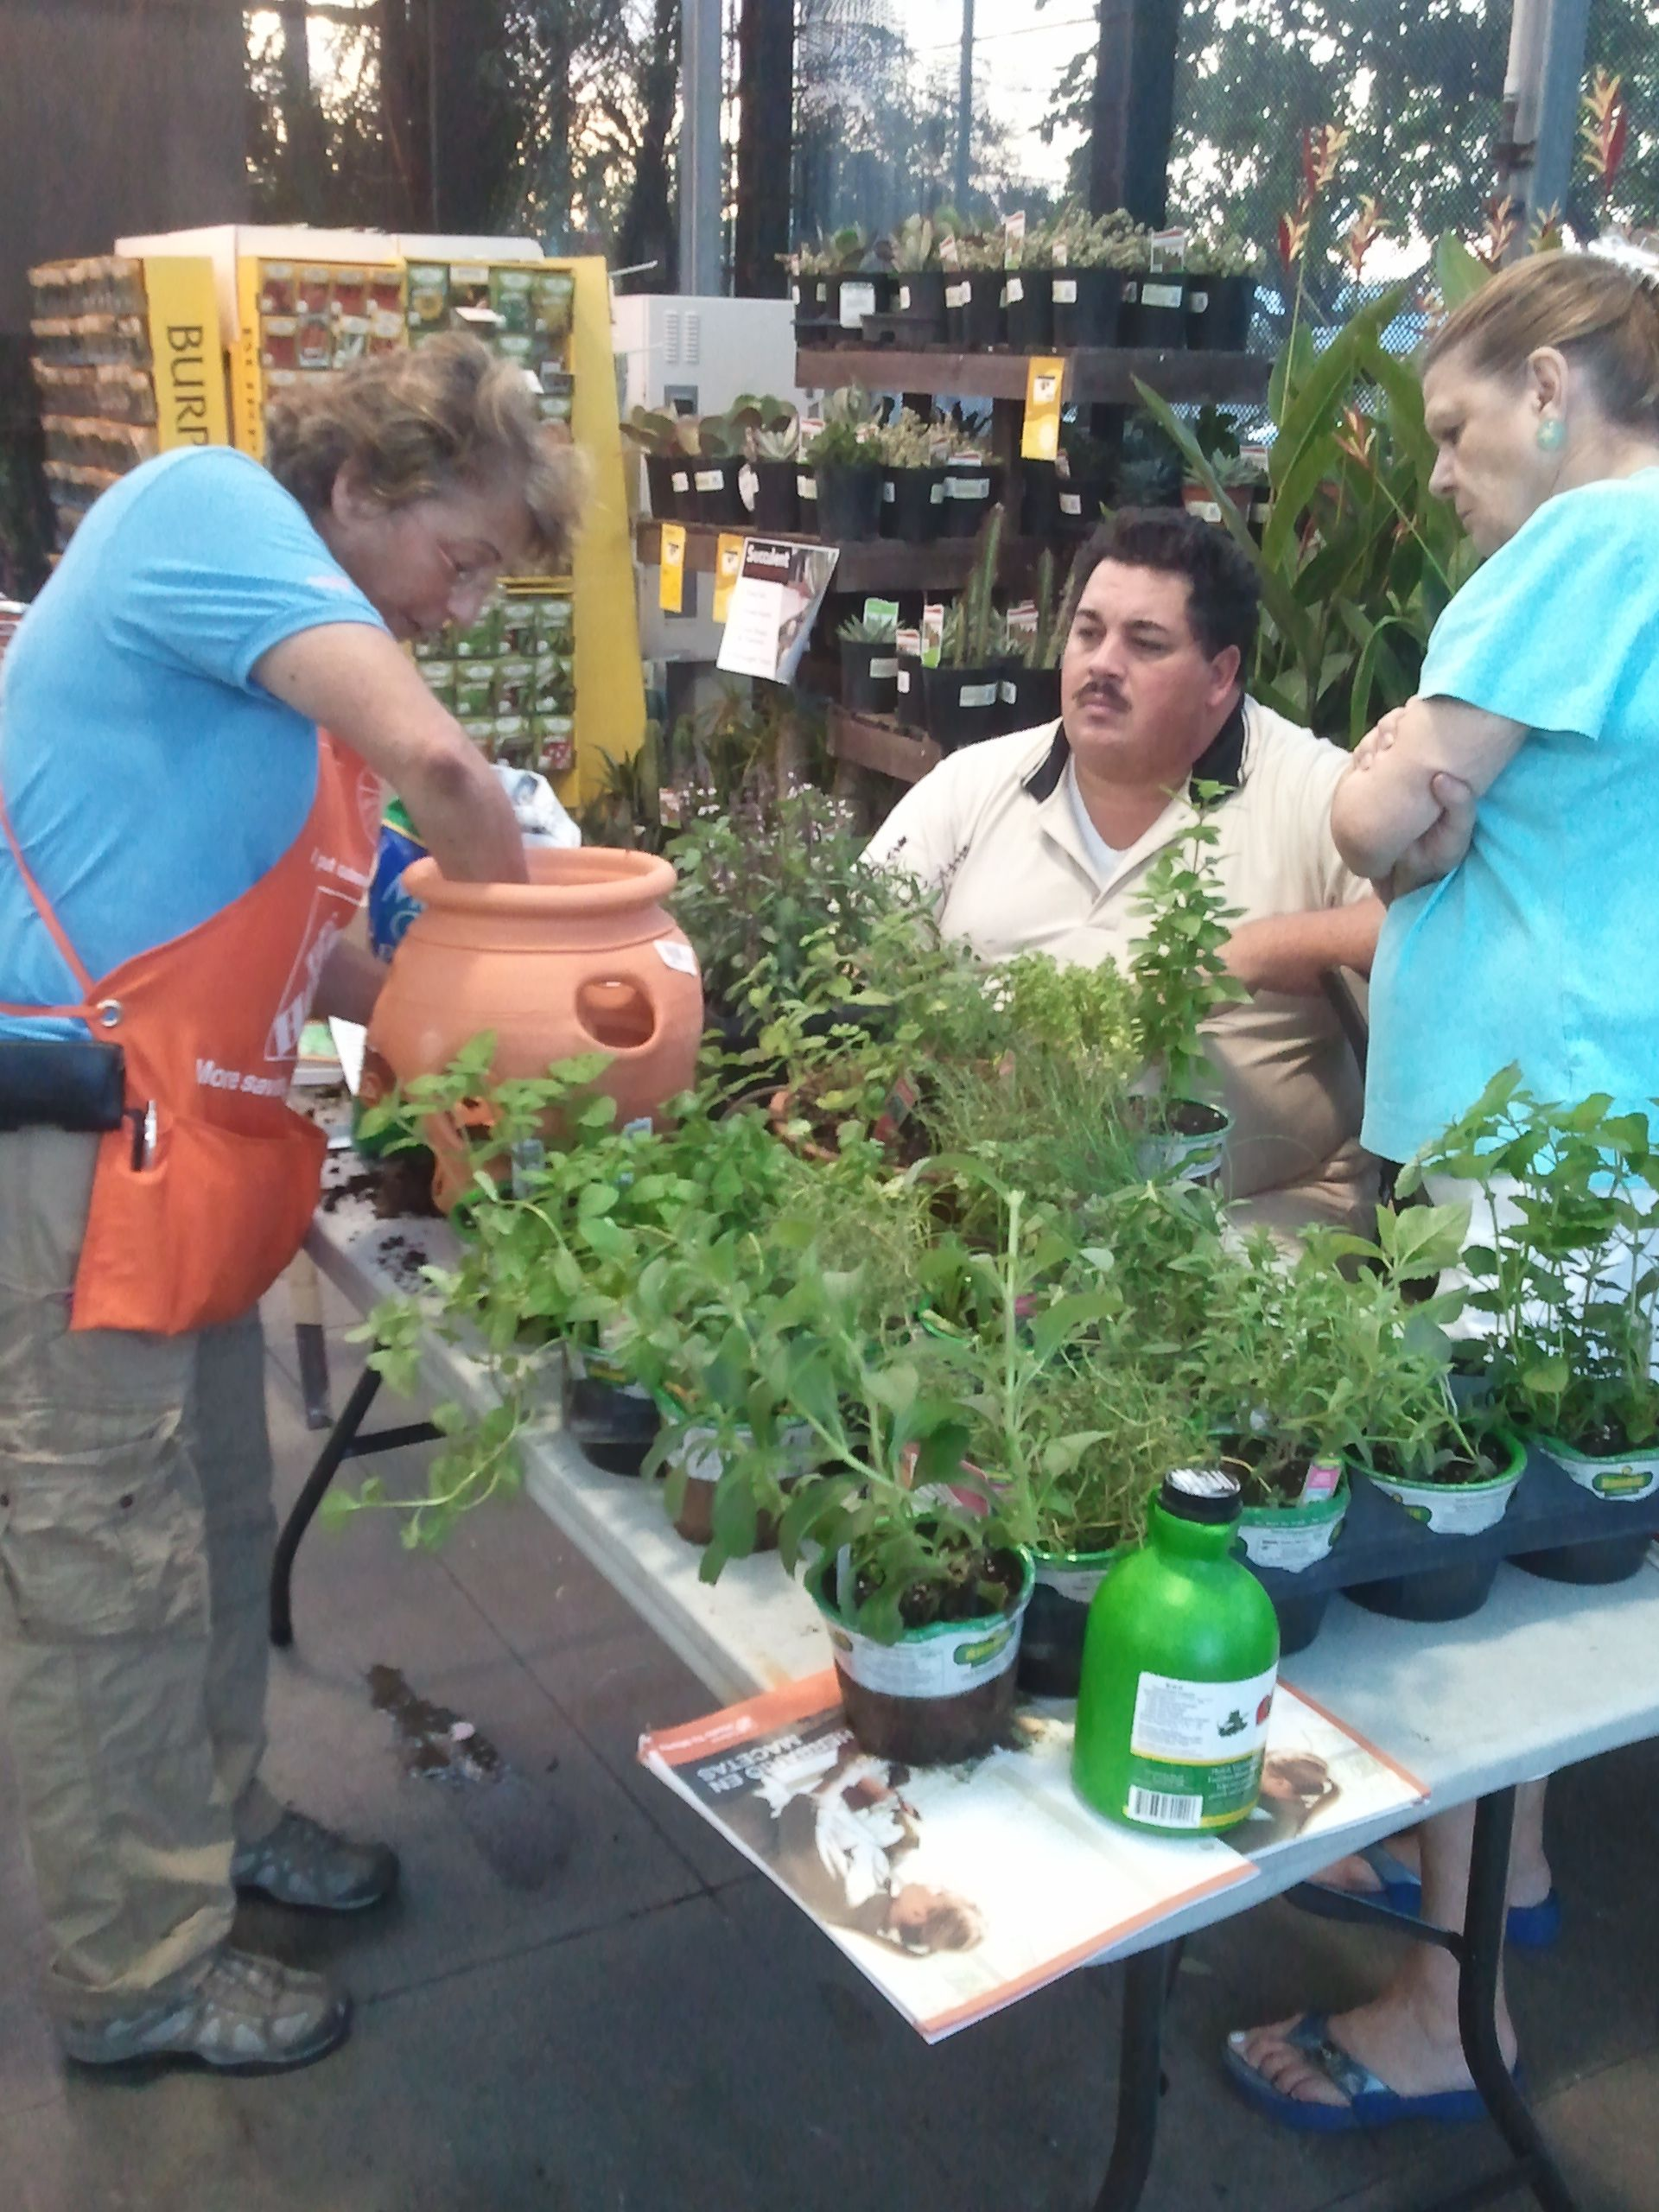 Herb container gardening, May 2012. Home depot store